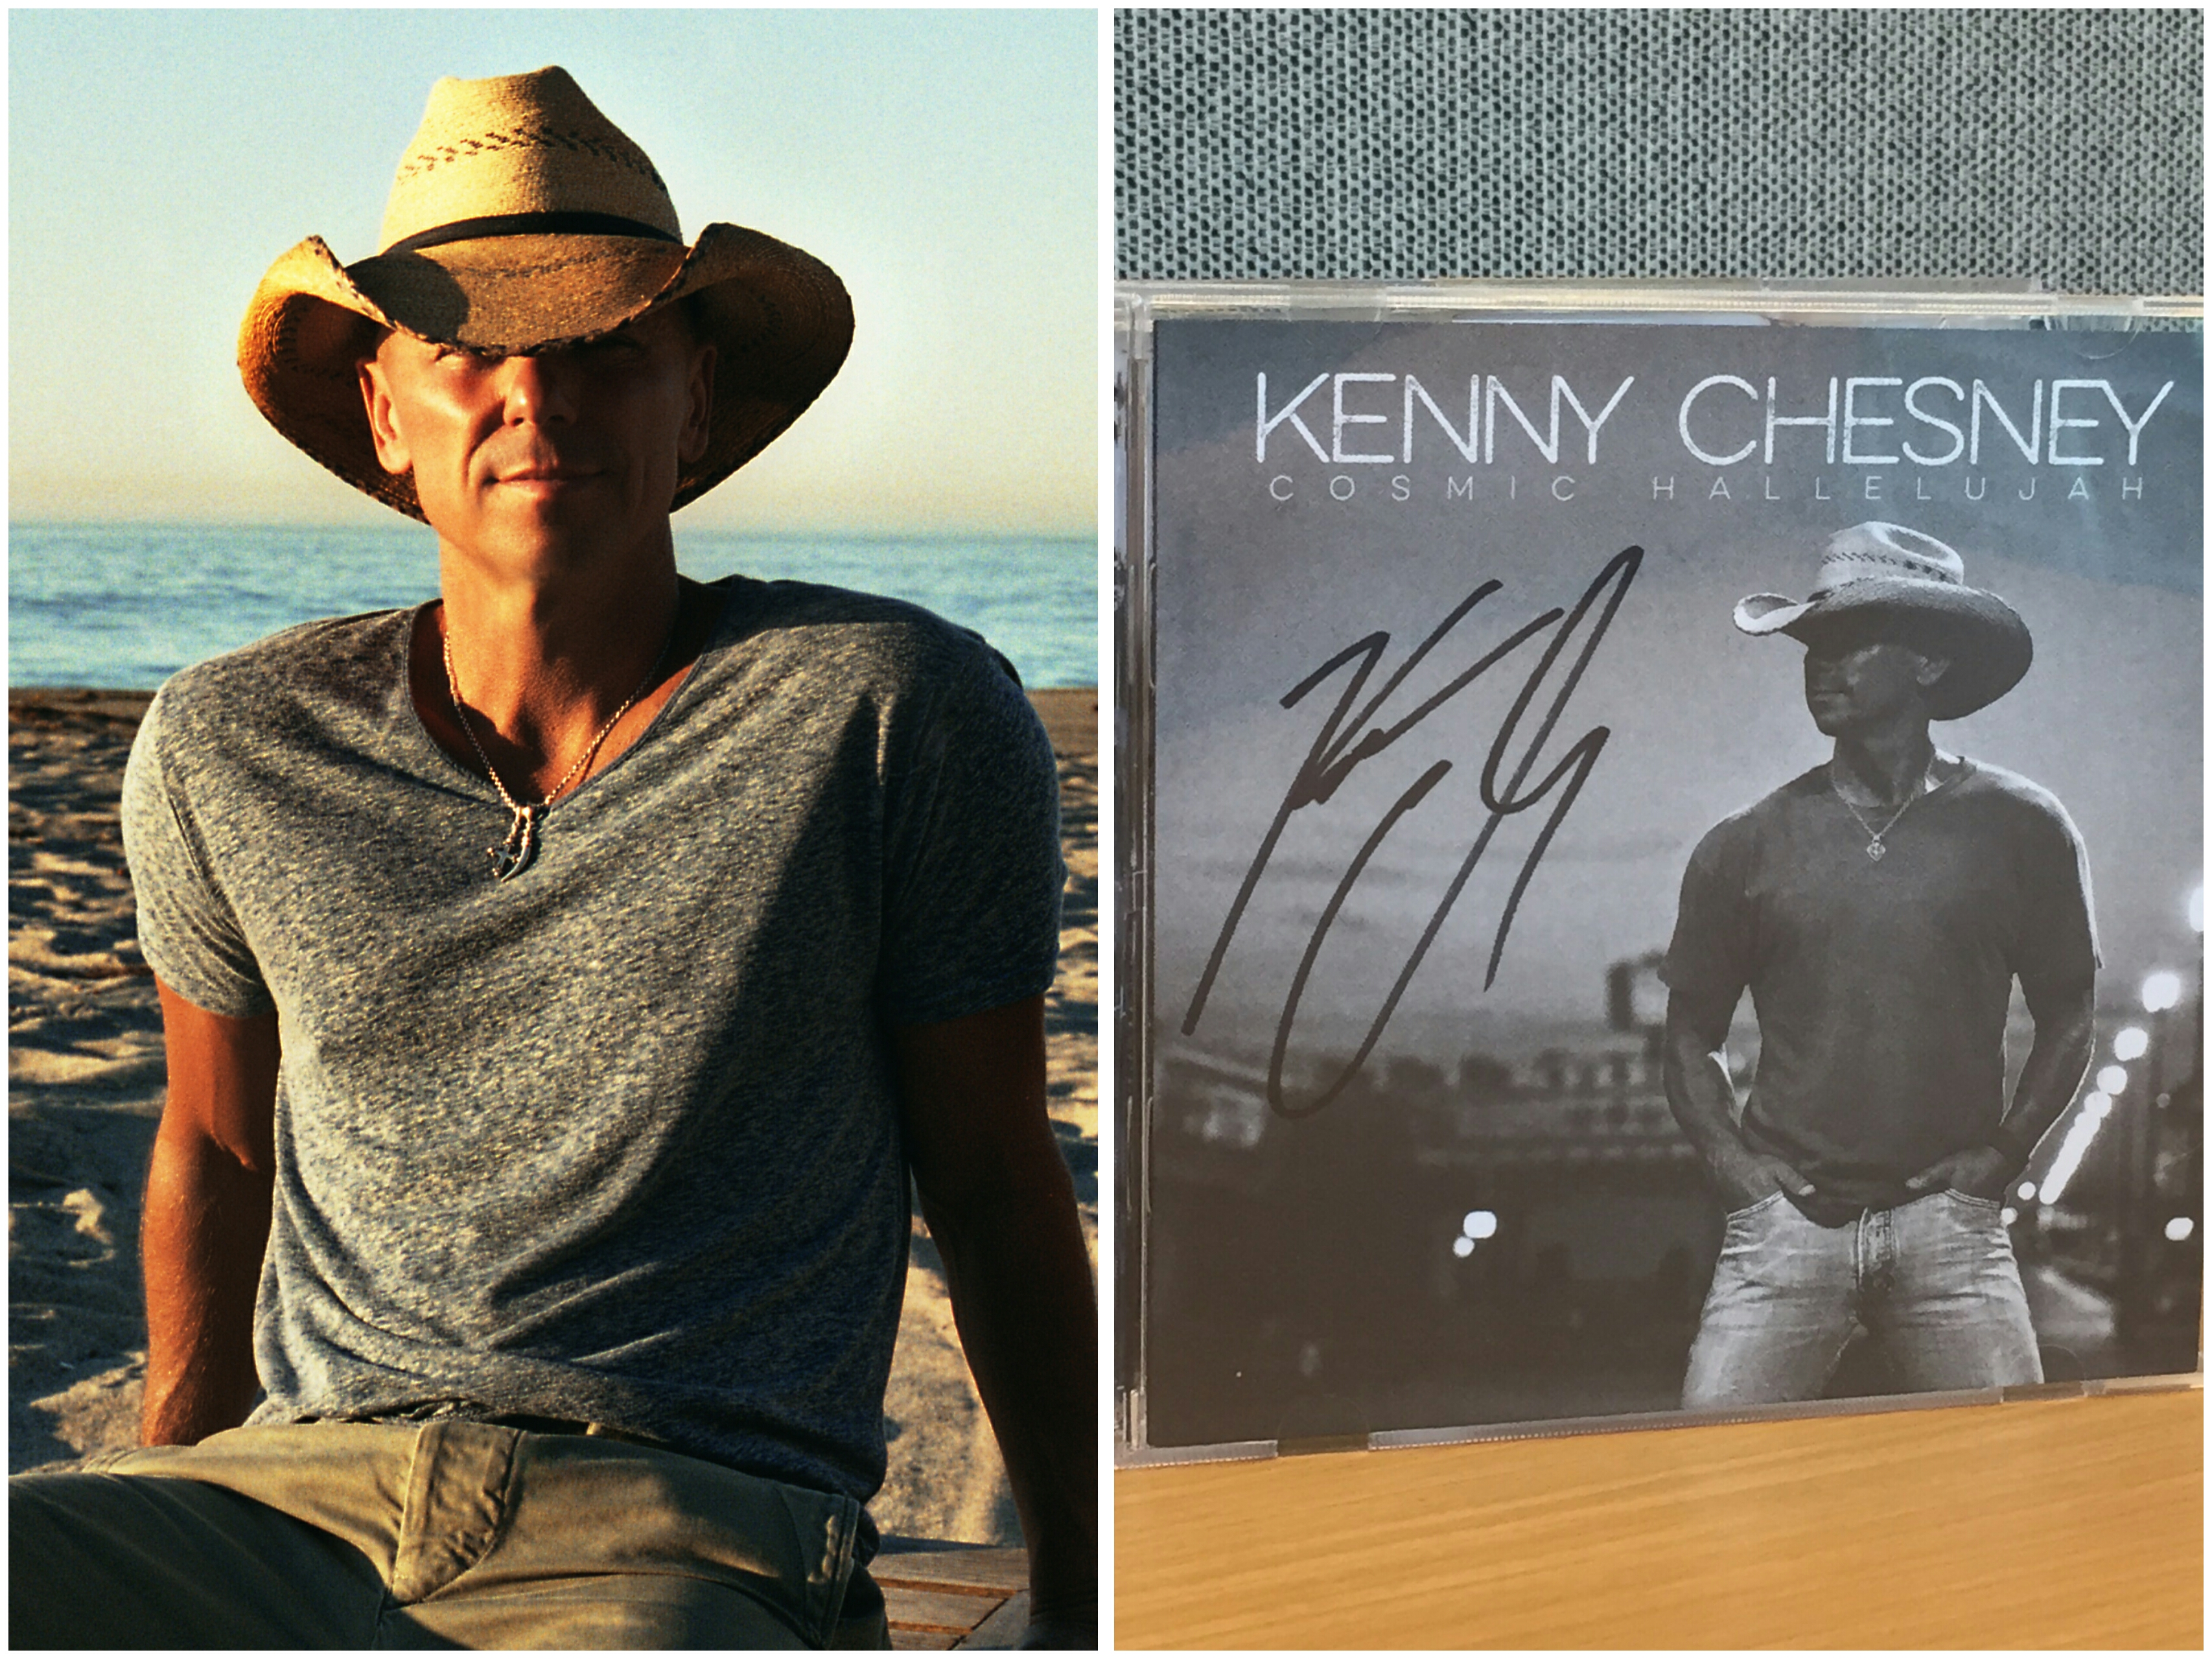 WIN an Autographed Copy of Kenny Chesney's 'Cosmic Hallelujah'